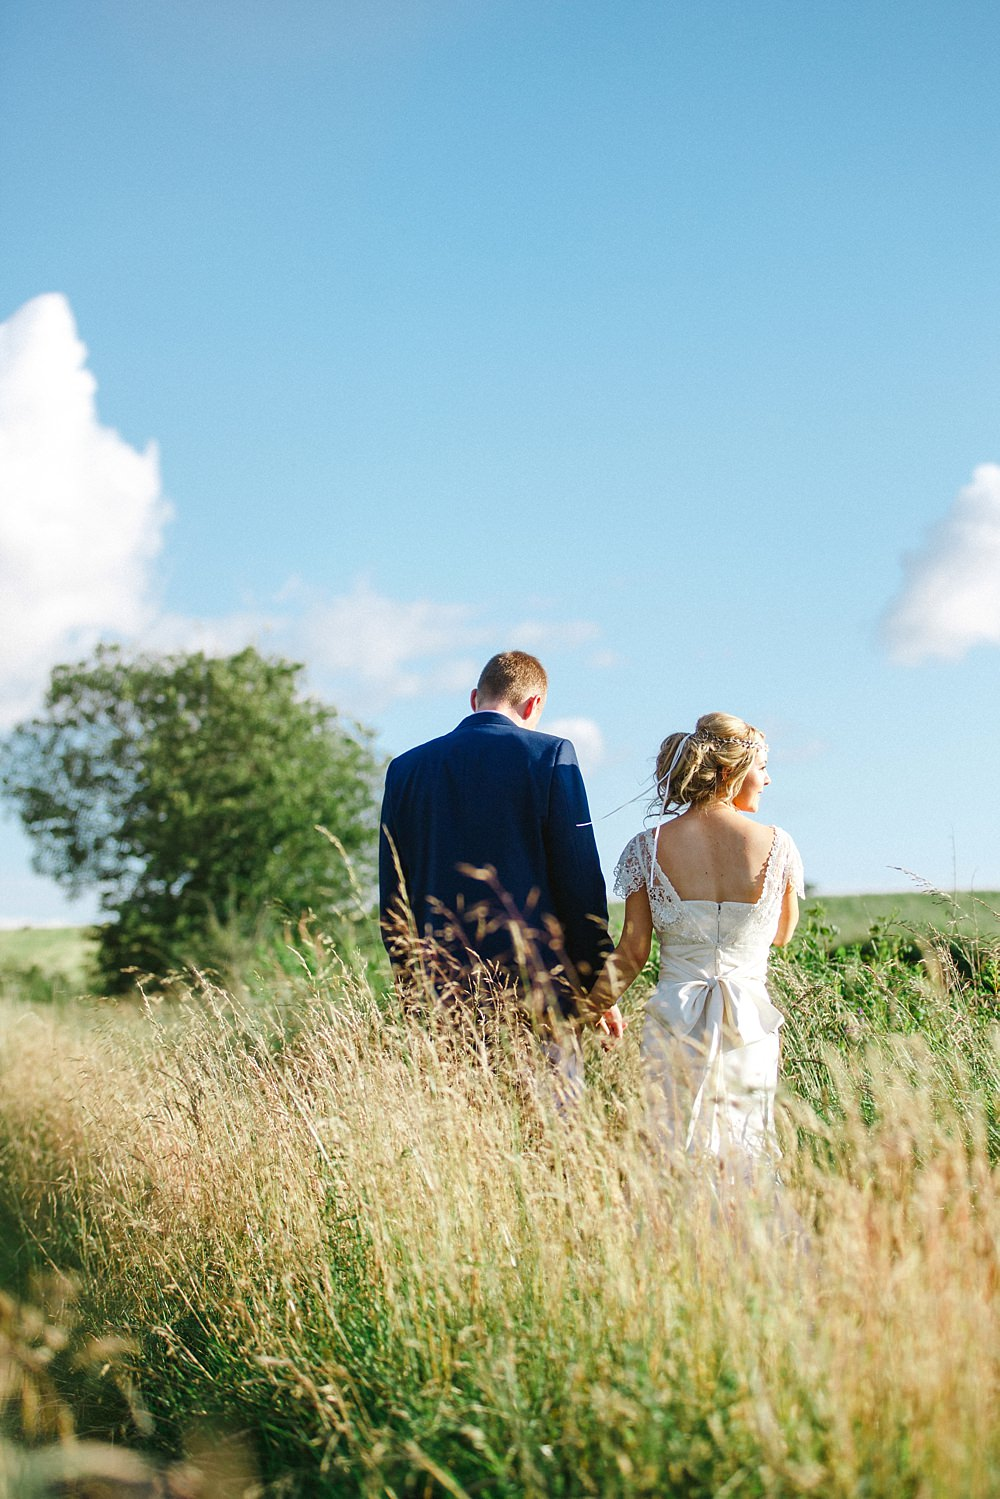 Chantal Lachance-Gibson Photography,Fine Art Wedding Photographers,The Gibsons,creative wedding photographers glasgow,husband and wife wedding photographers scotland,natural wedding photographers Glasgow,